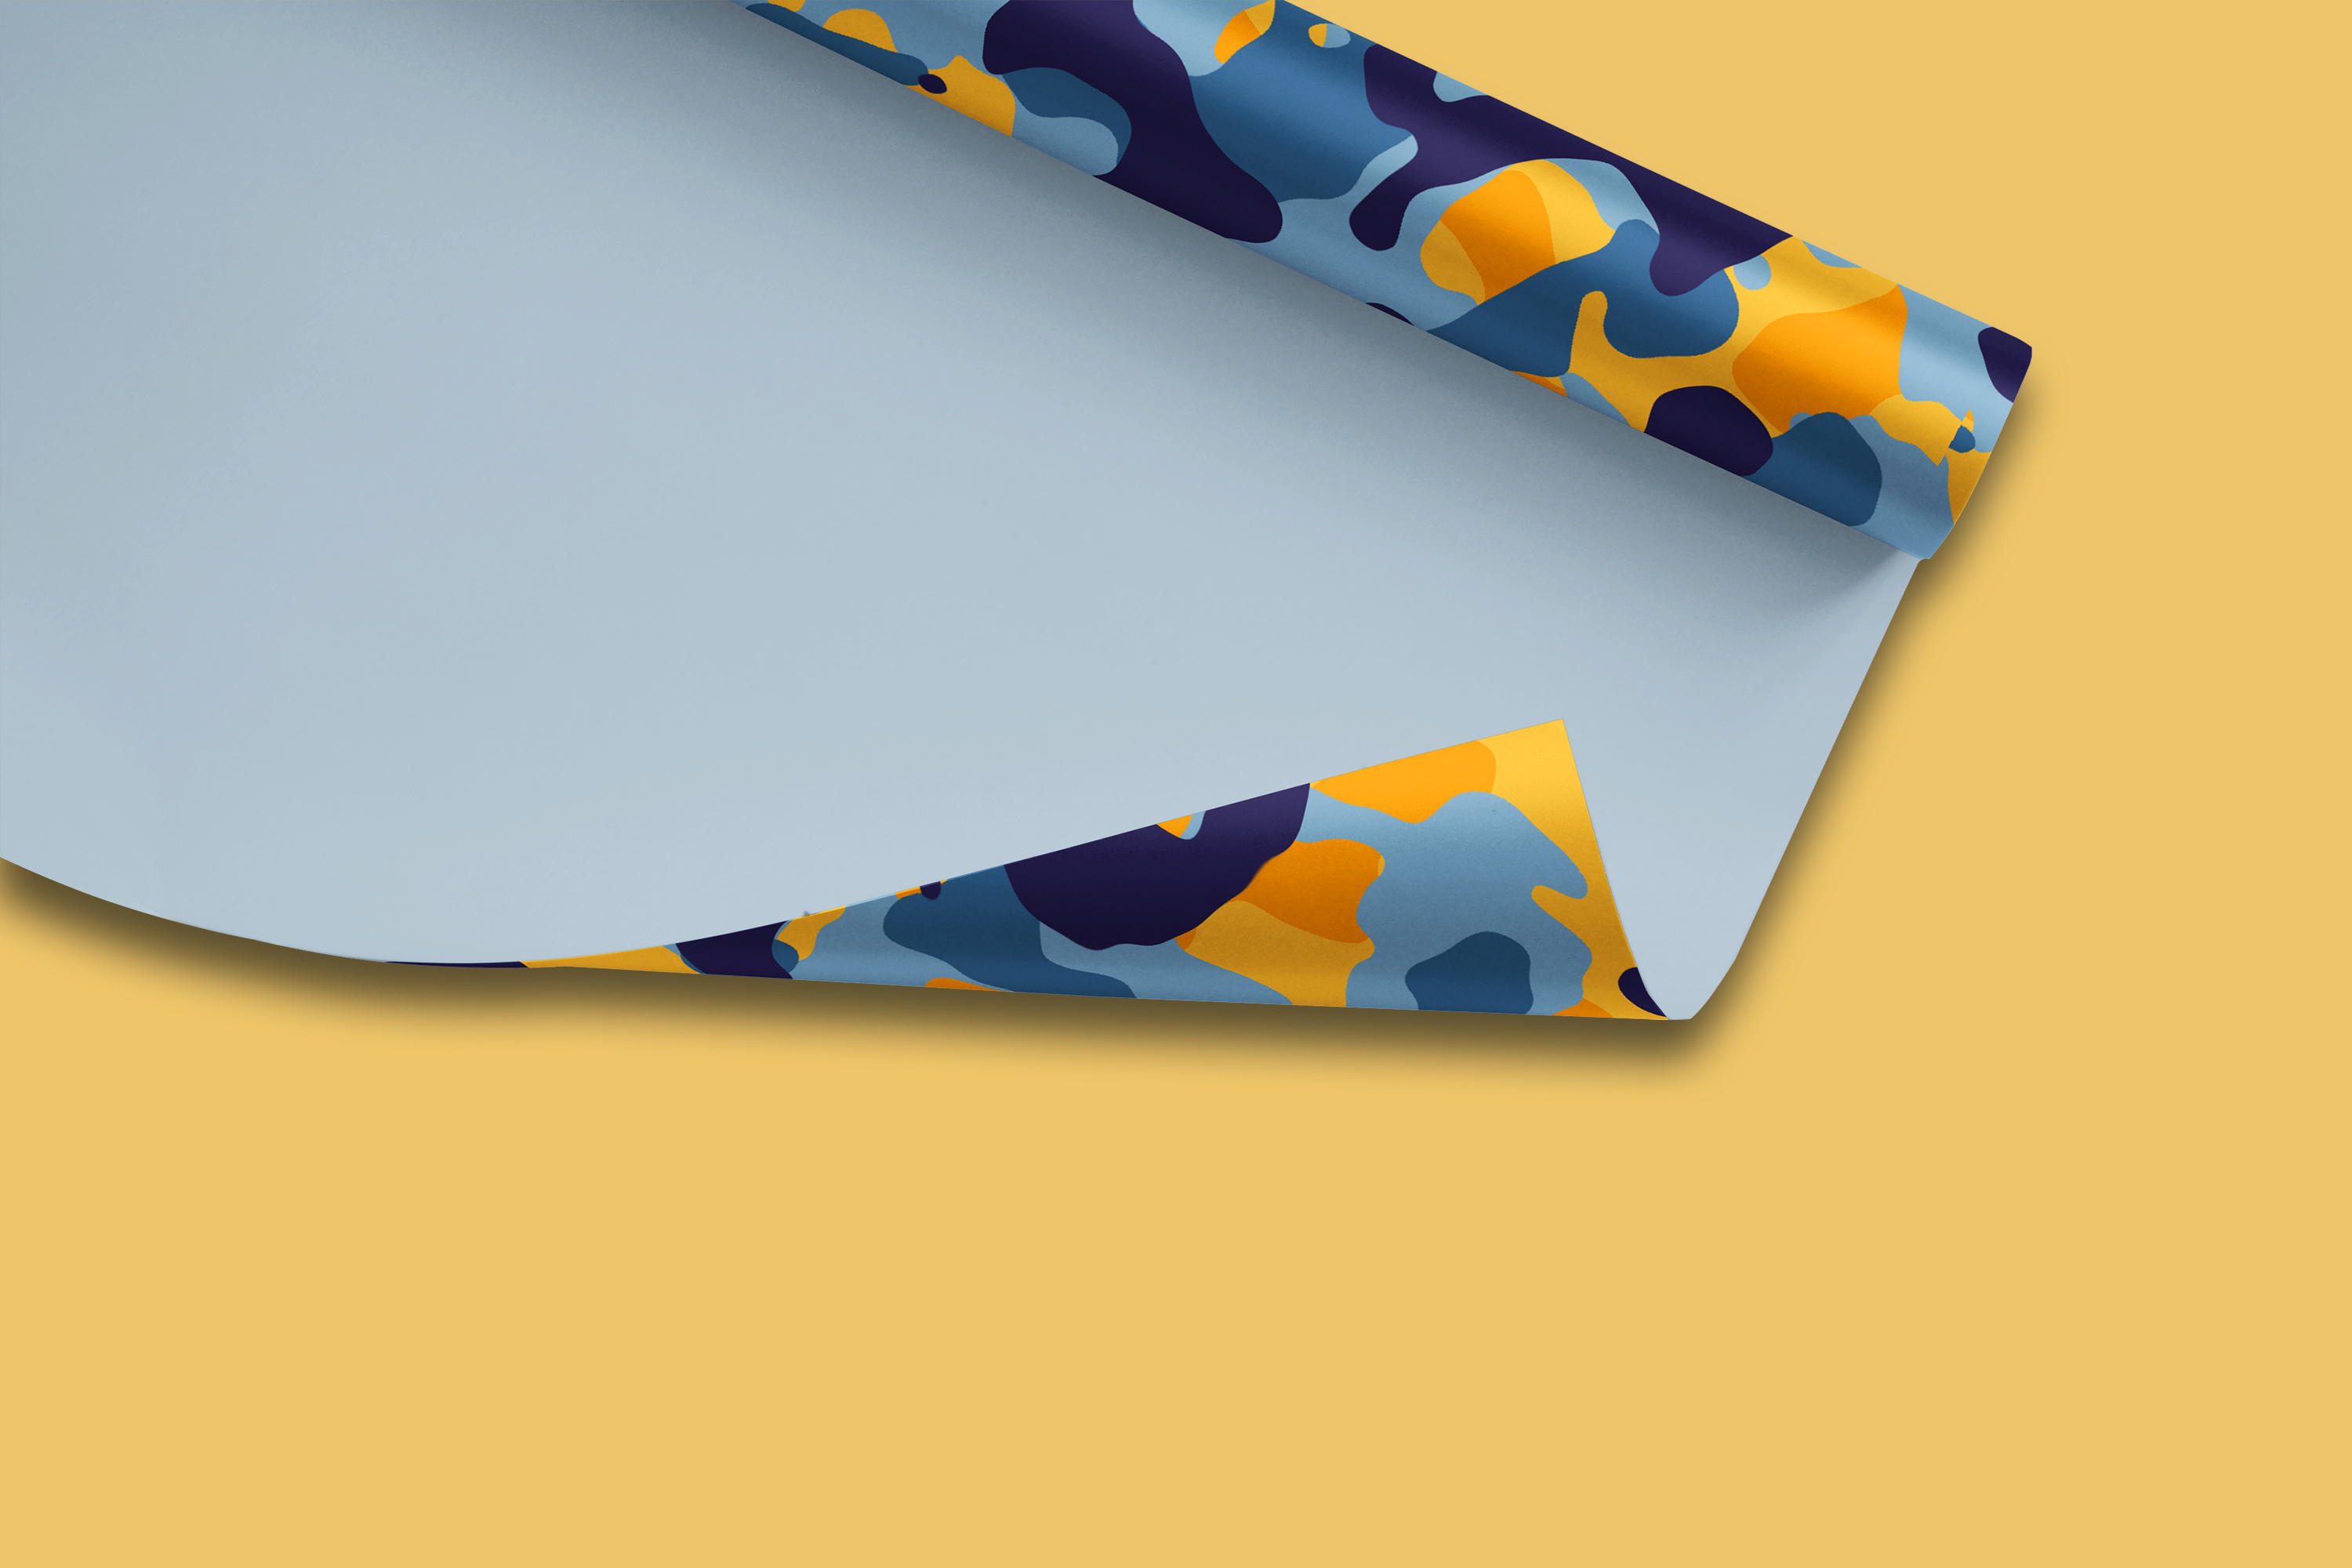 40 Alternative Camouflage Paper Designs example image 14